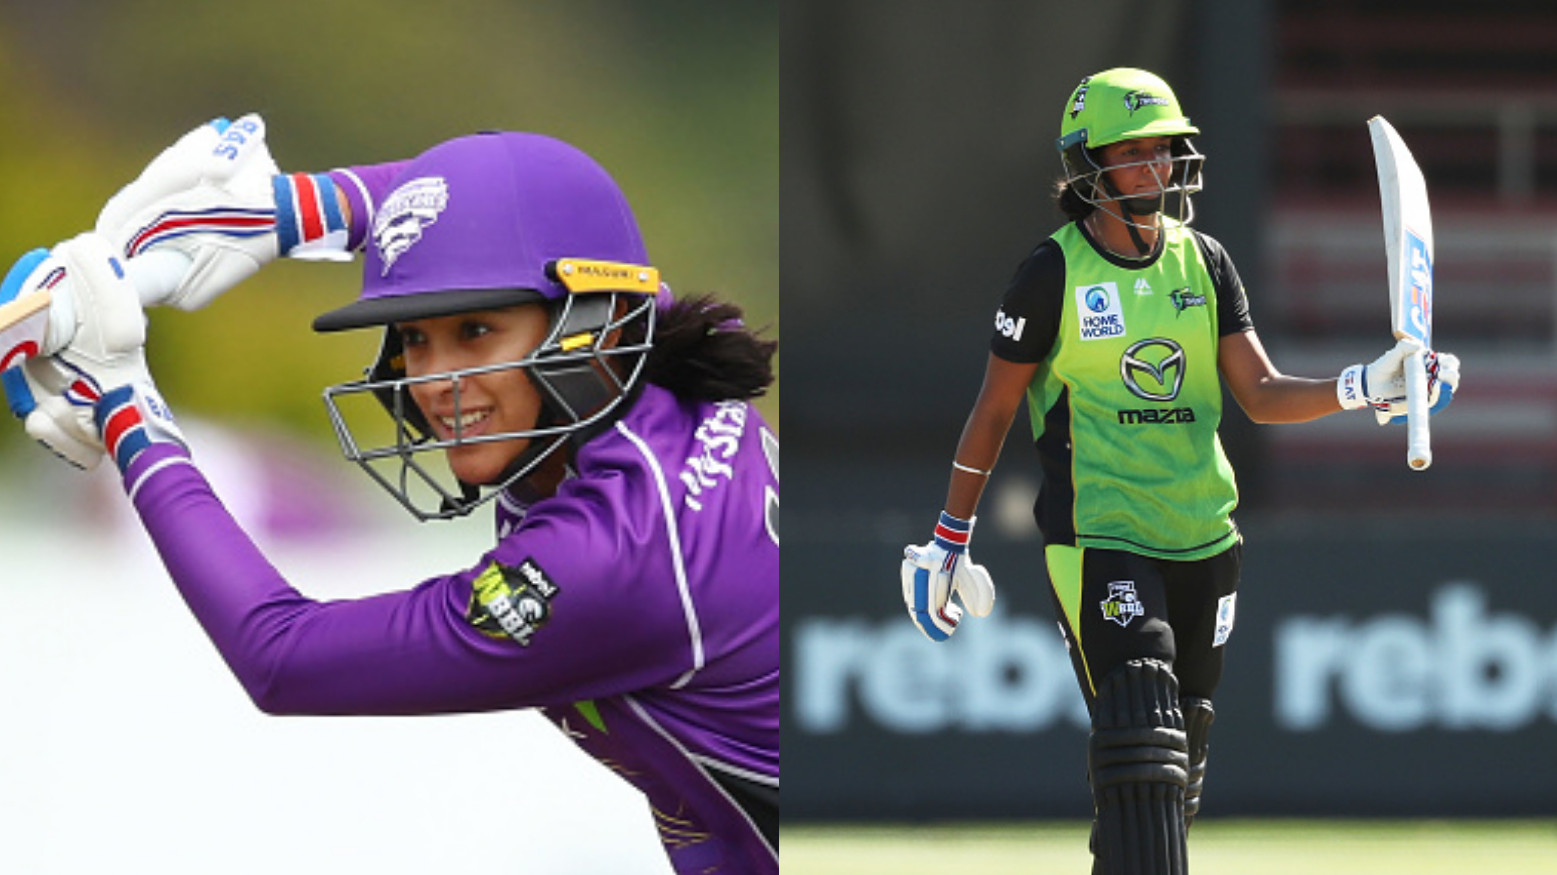 Smriti Mandhana and Harmanpreet Kaur hit match winning fifties for their teams in WBBL 2018